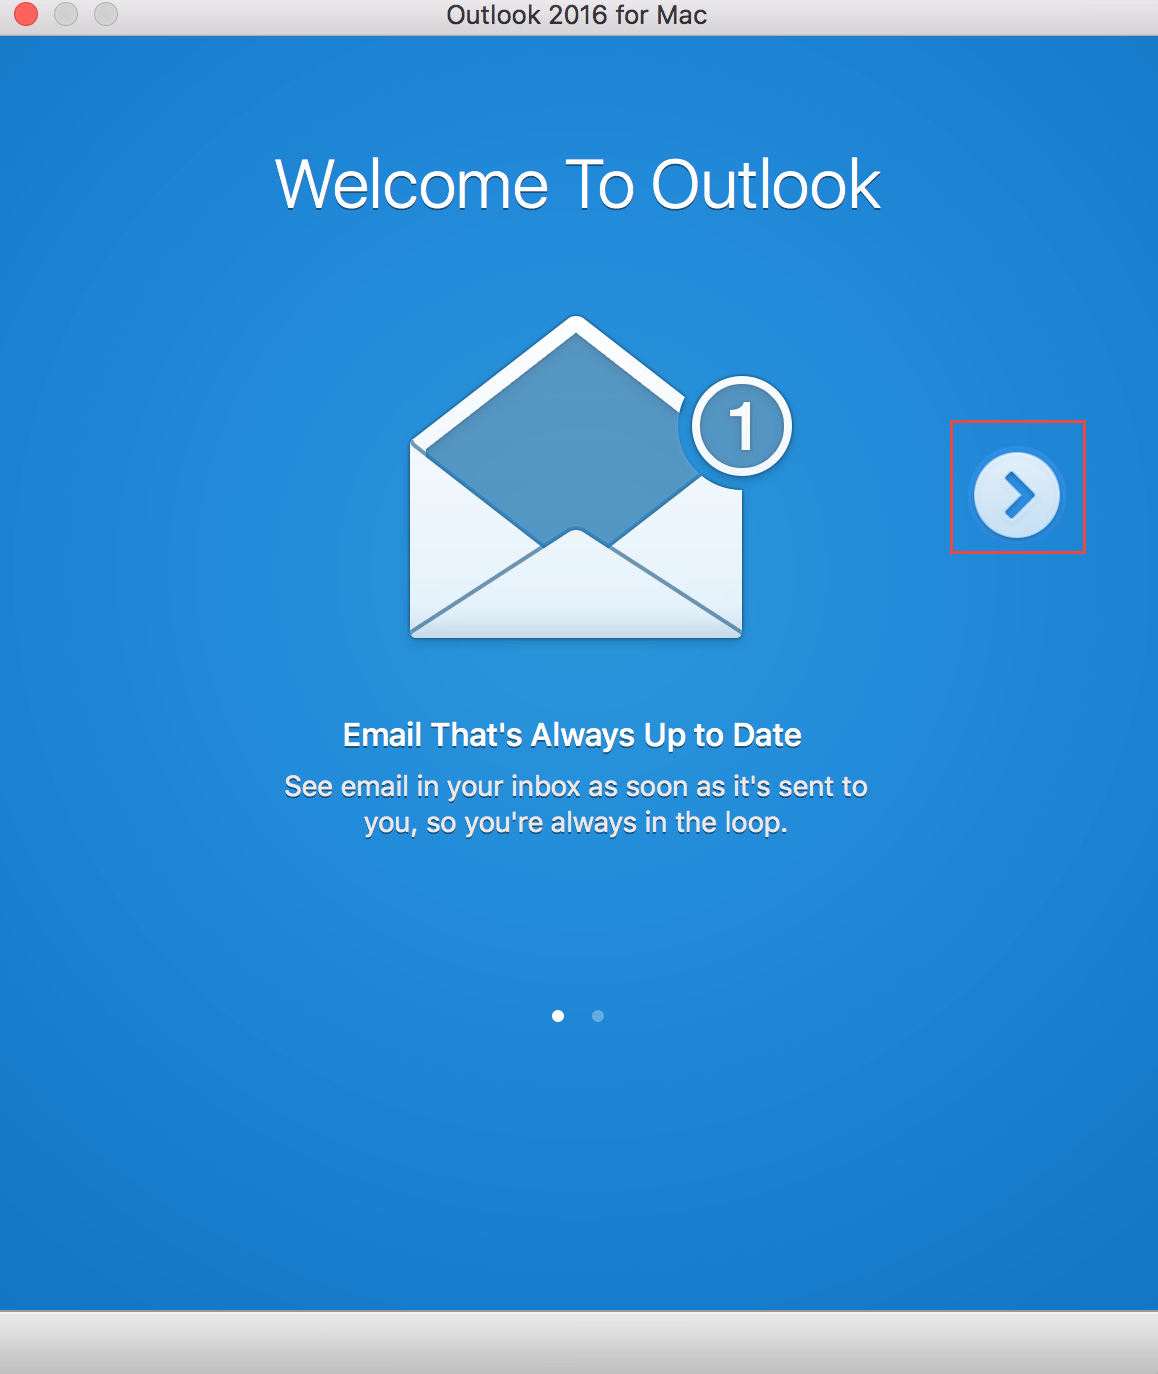 Outlook wizard - first screen